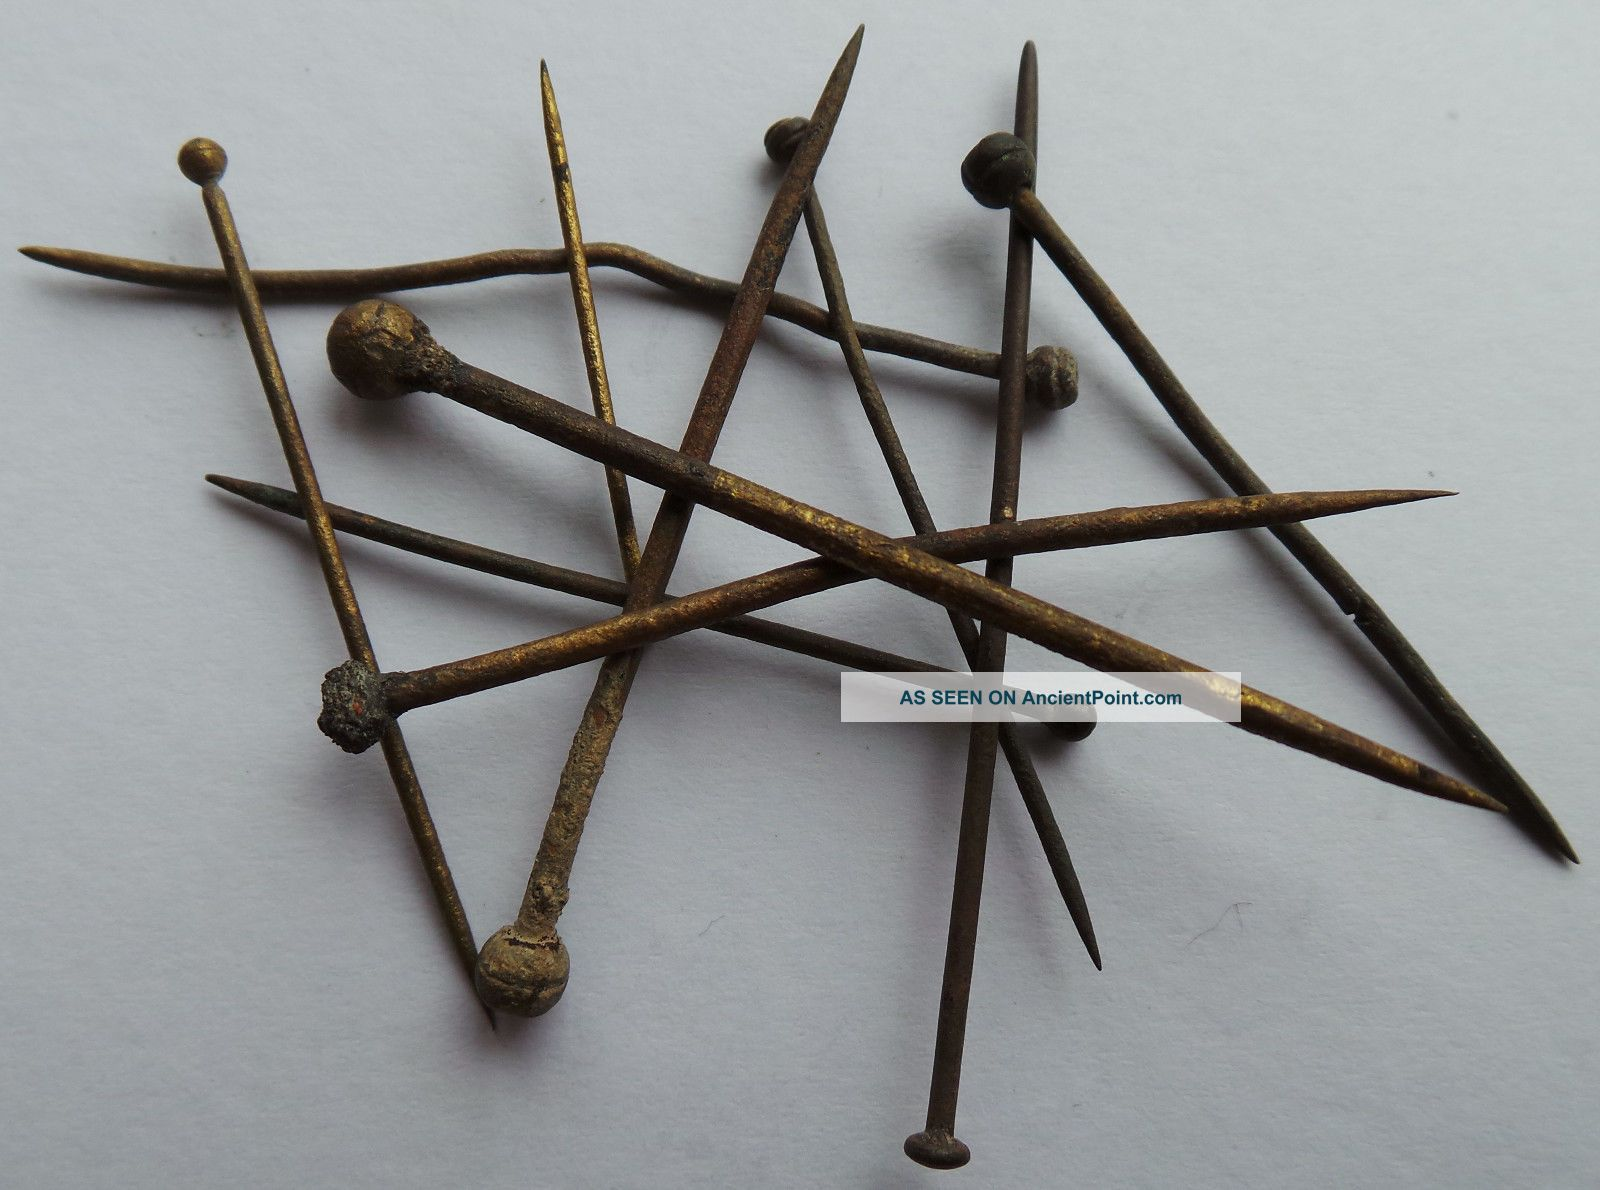 10 Hand Made Brass Pins From The 16th.  Century With Wrapped Heads. Needles & Cases photo